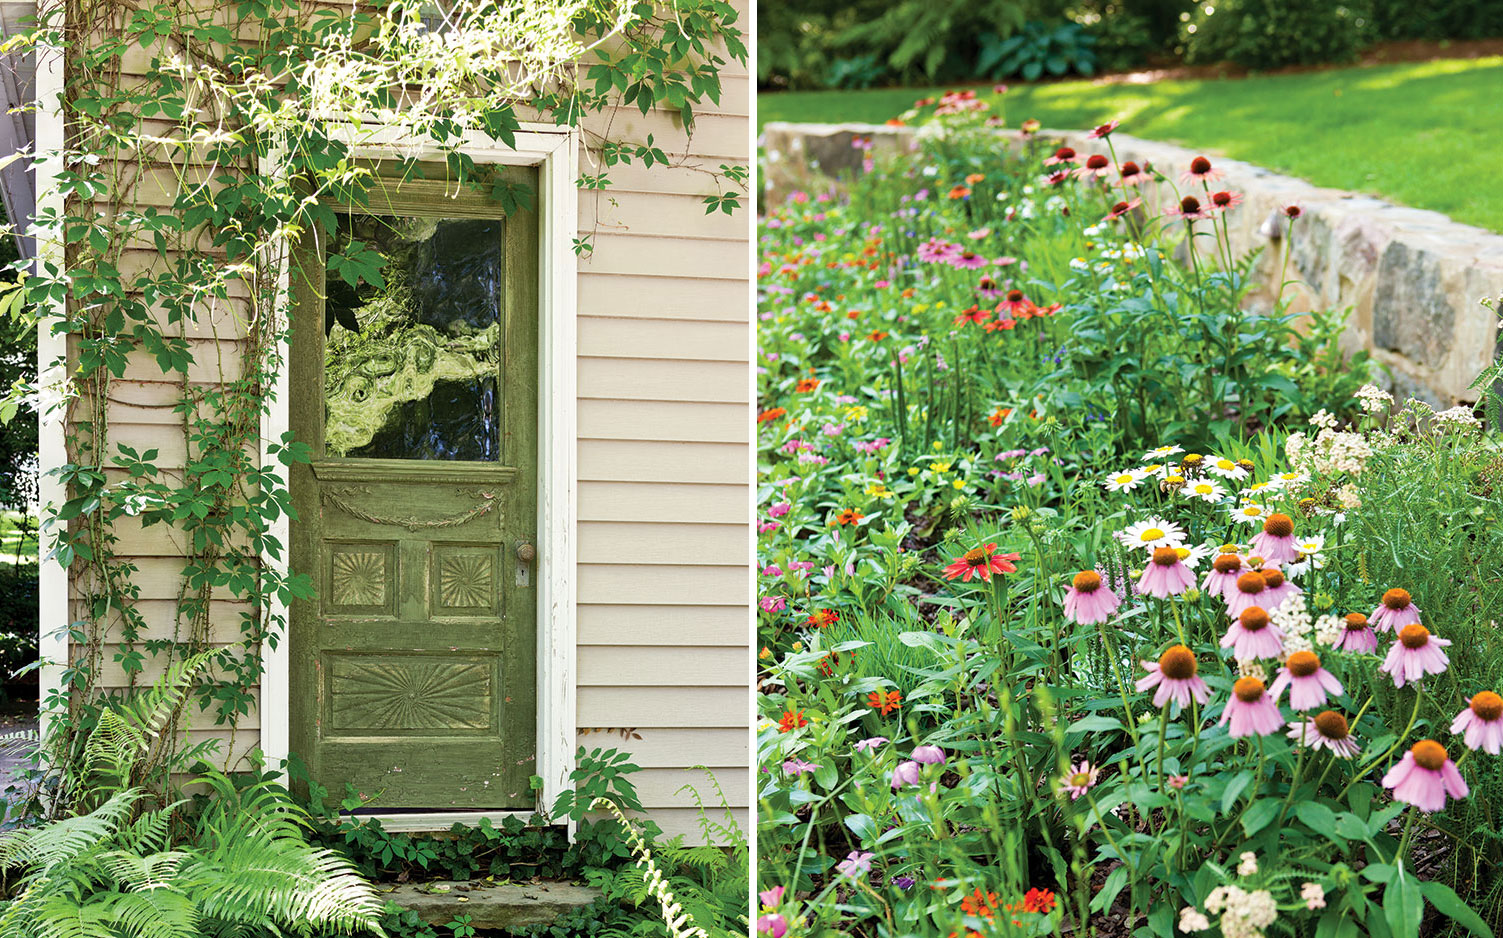 Cottage Garden door